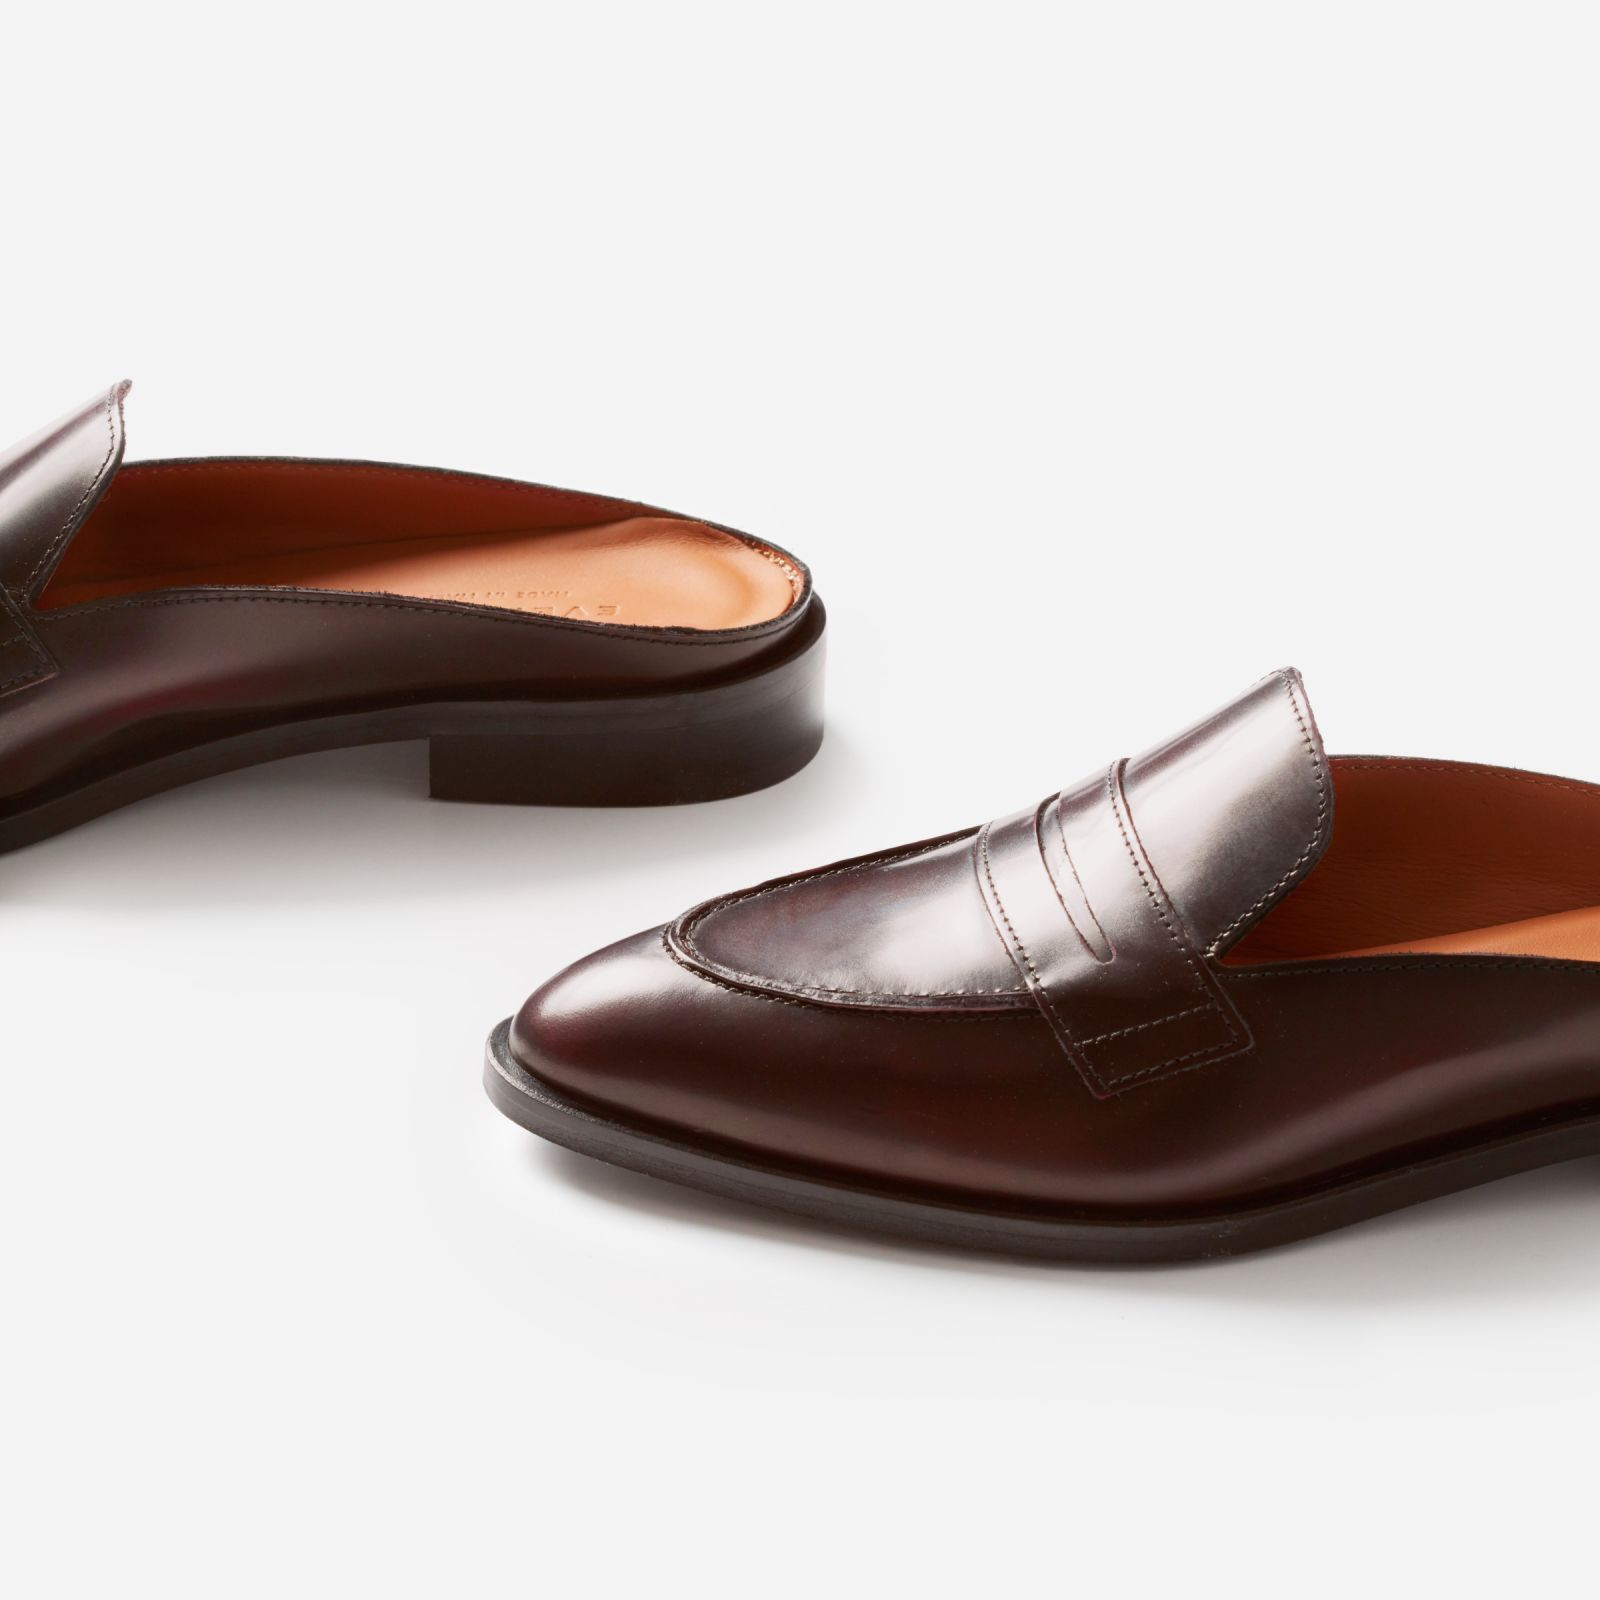 2ce577daf75 Women s Penny Loafers Mule by Everlane in Burgundy